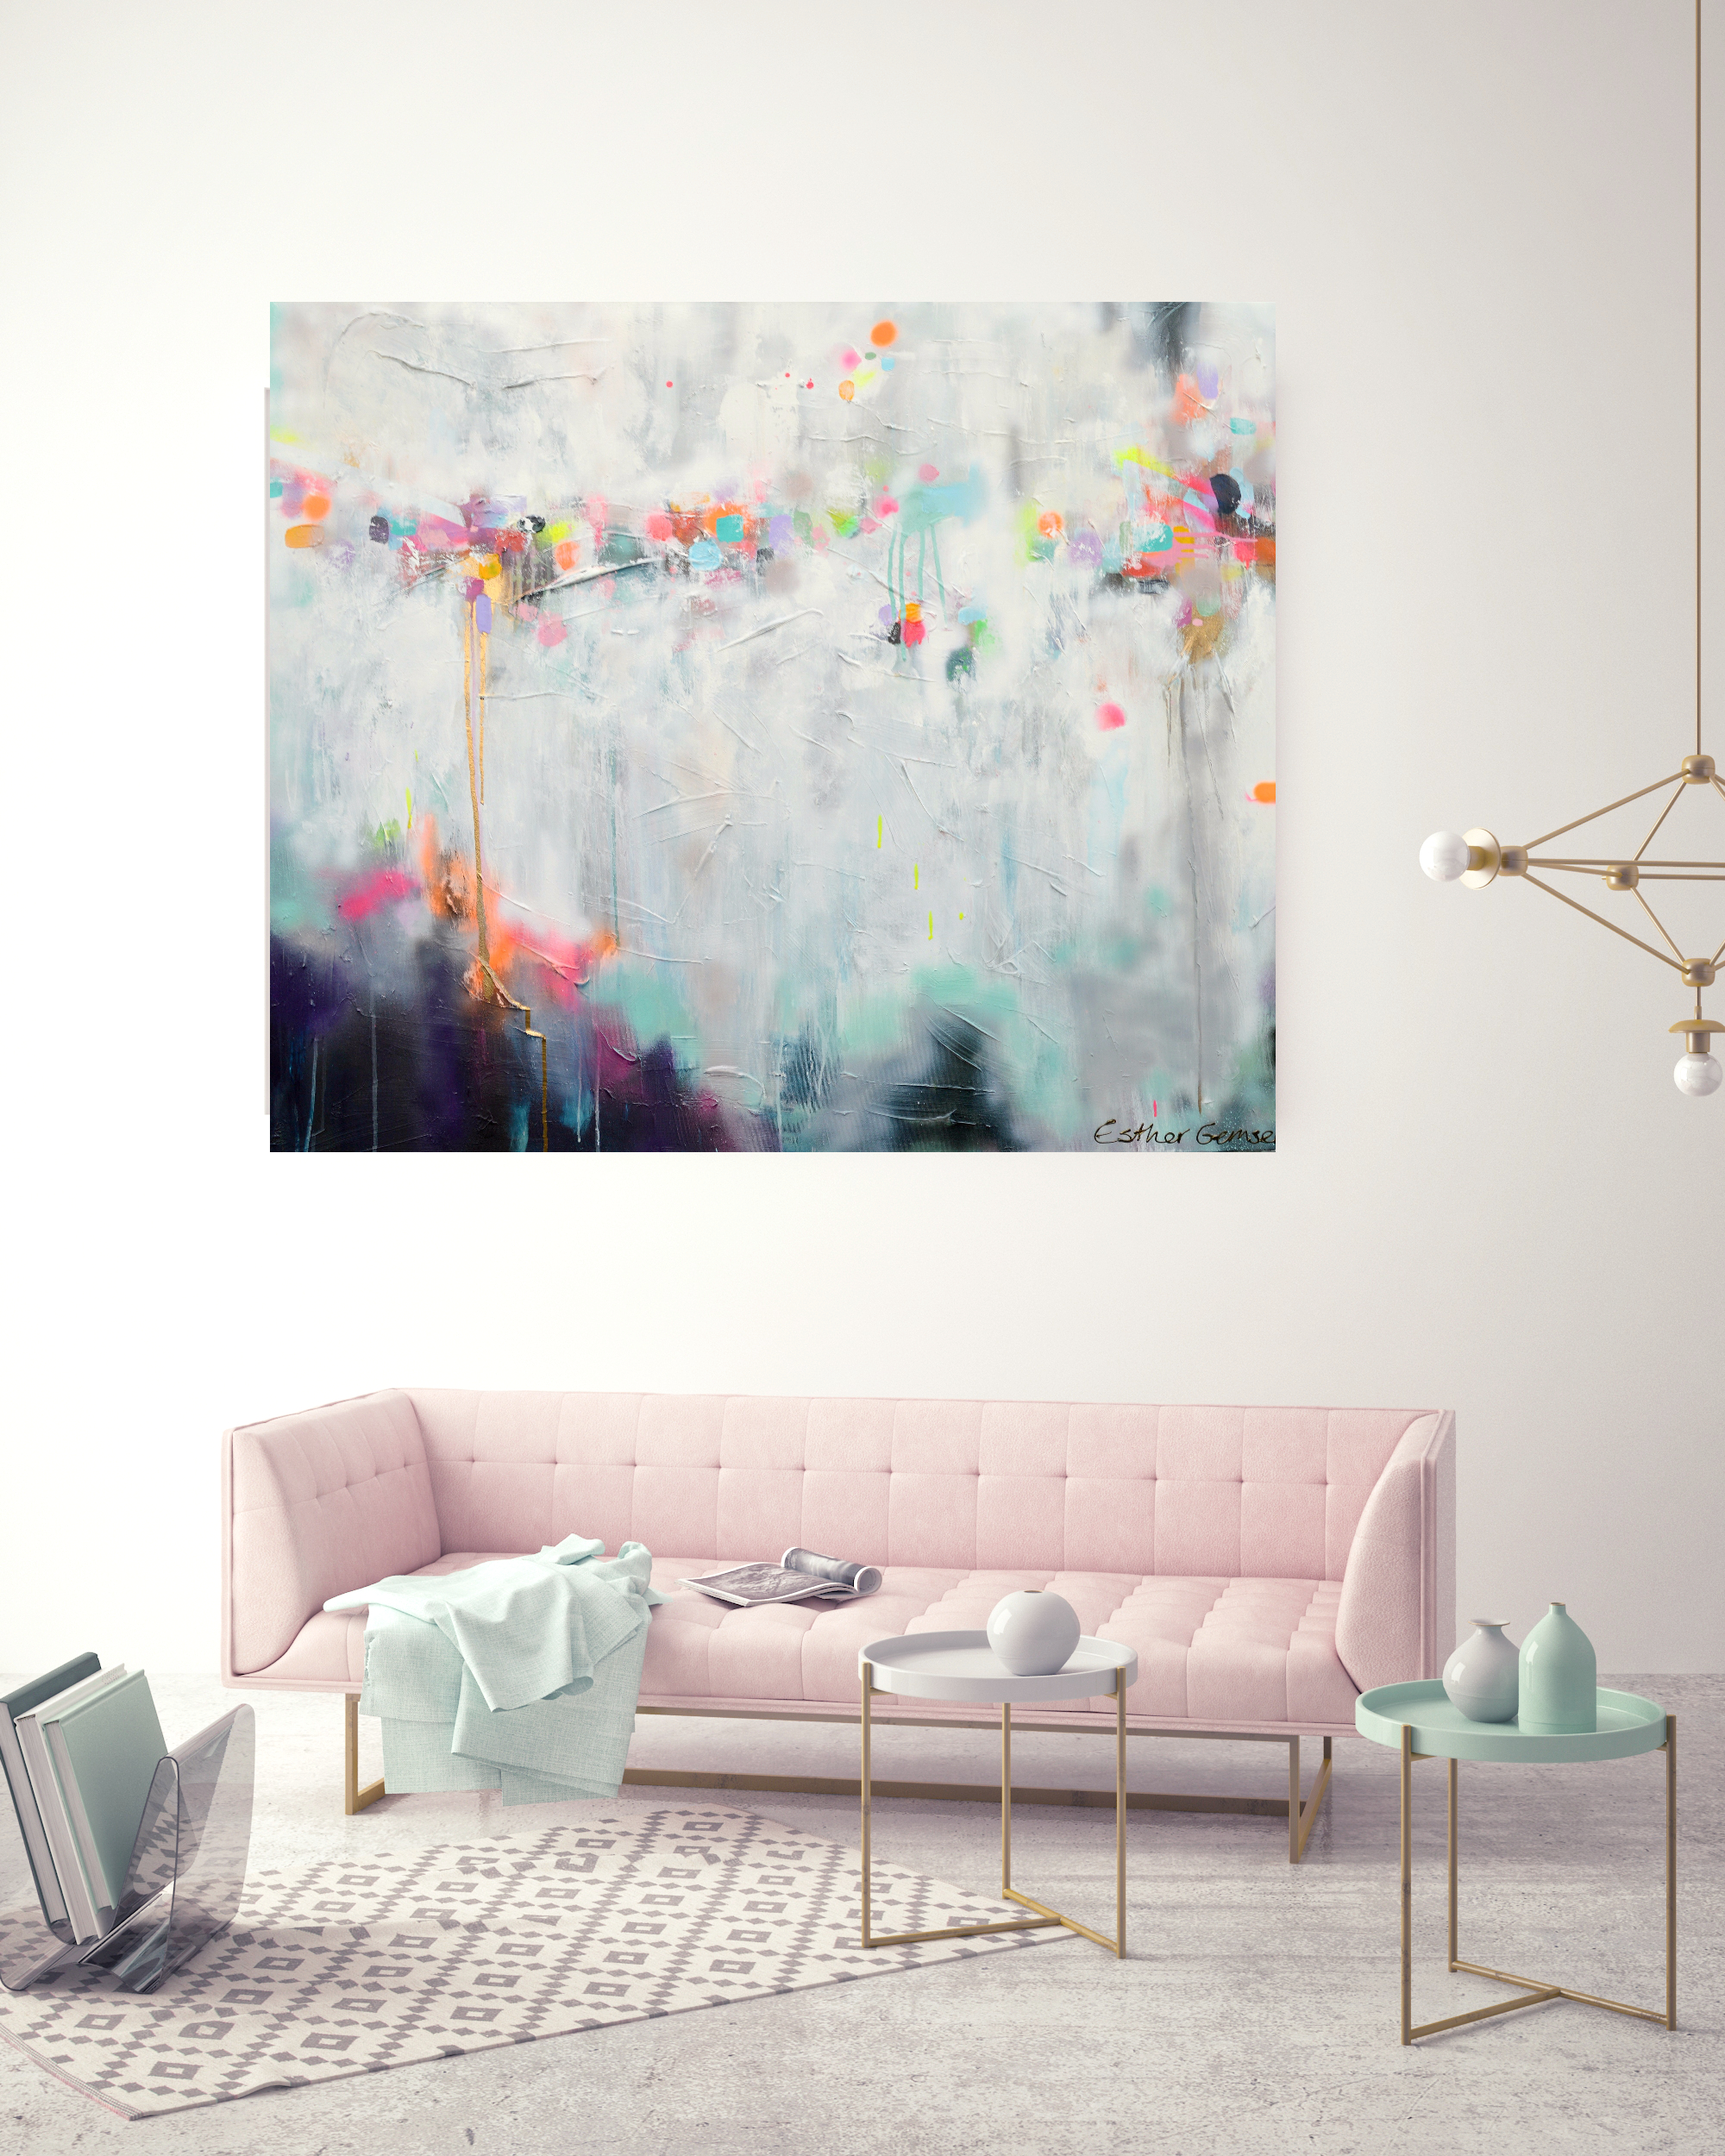 Schilderij Abstract Interieur Abstract Schilderij Van Kunstenares Esther Gemser New Day